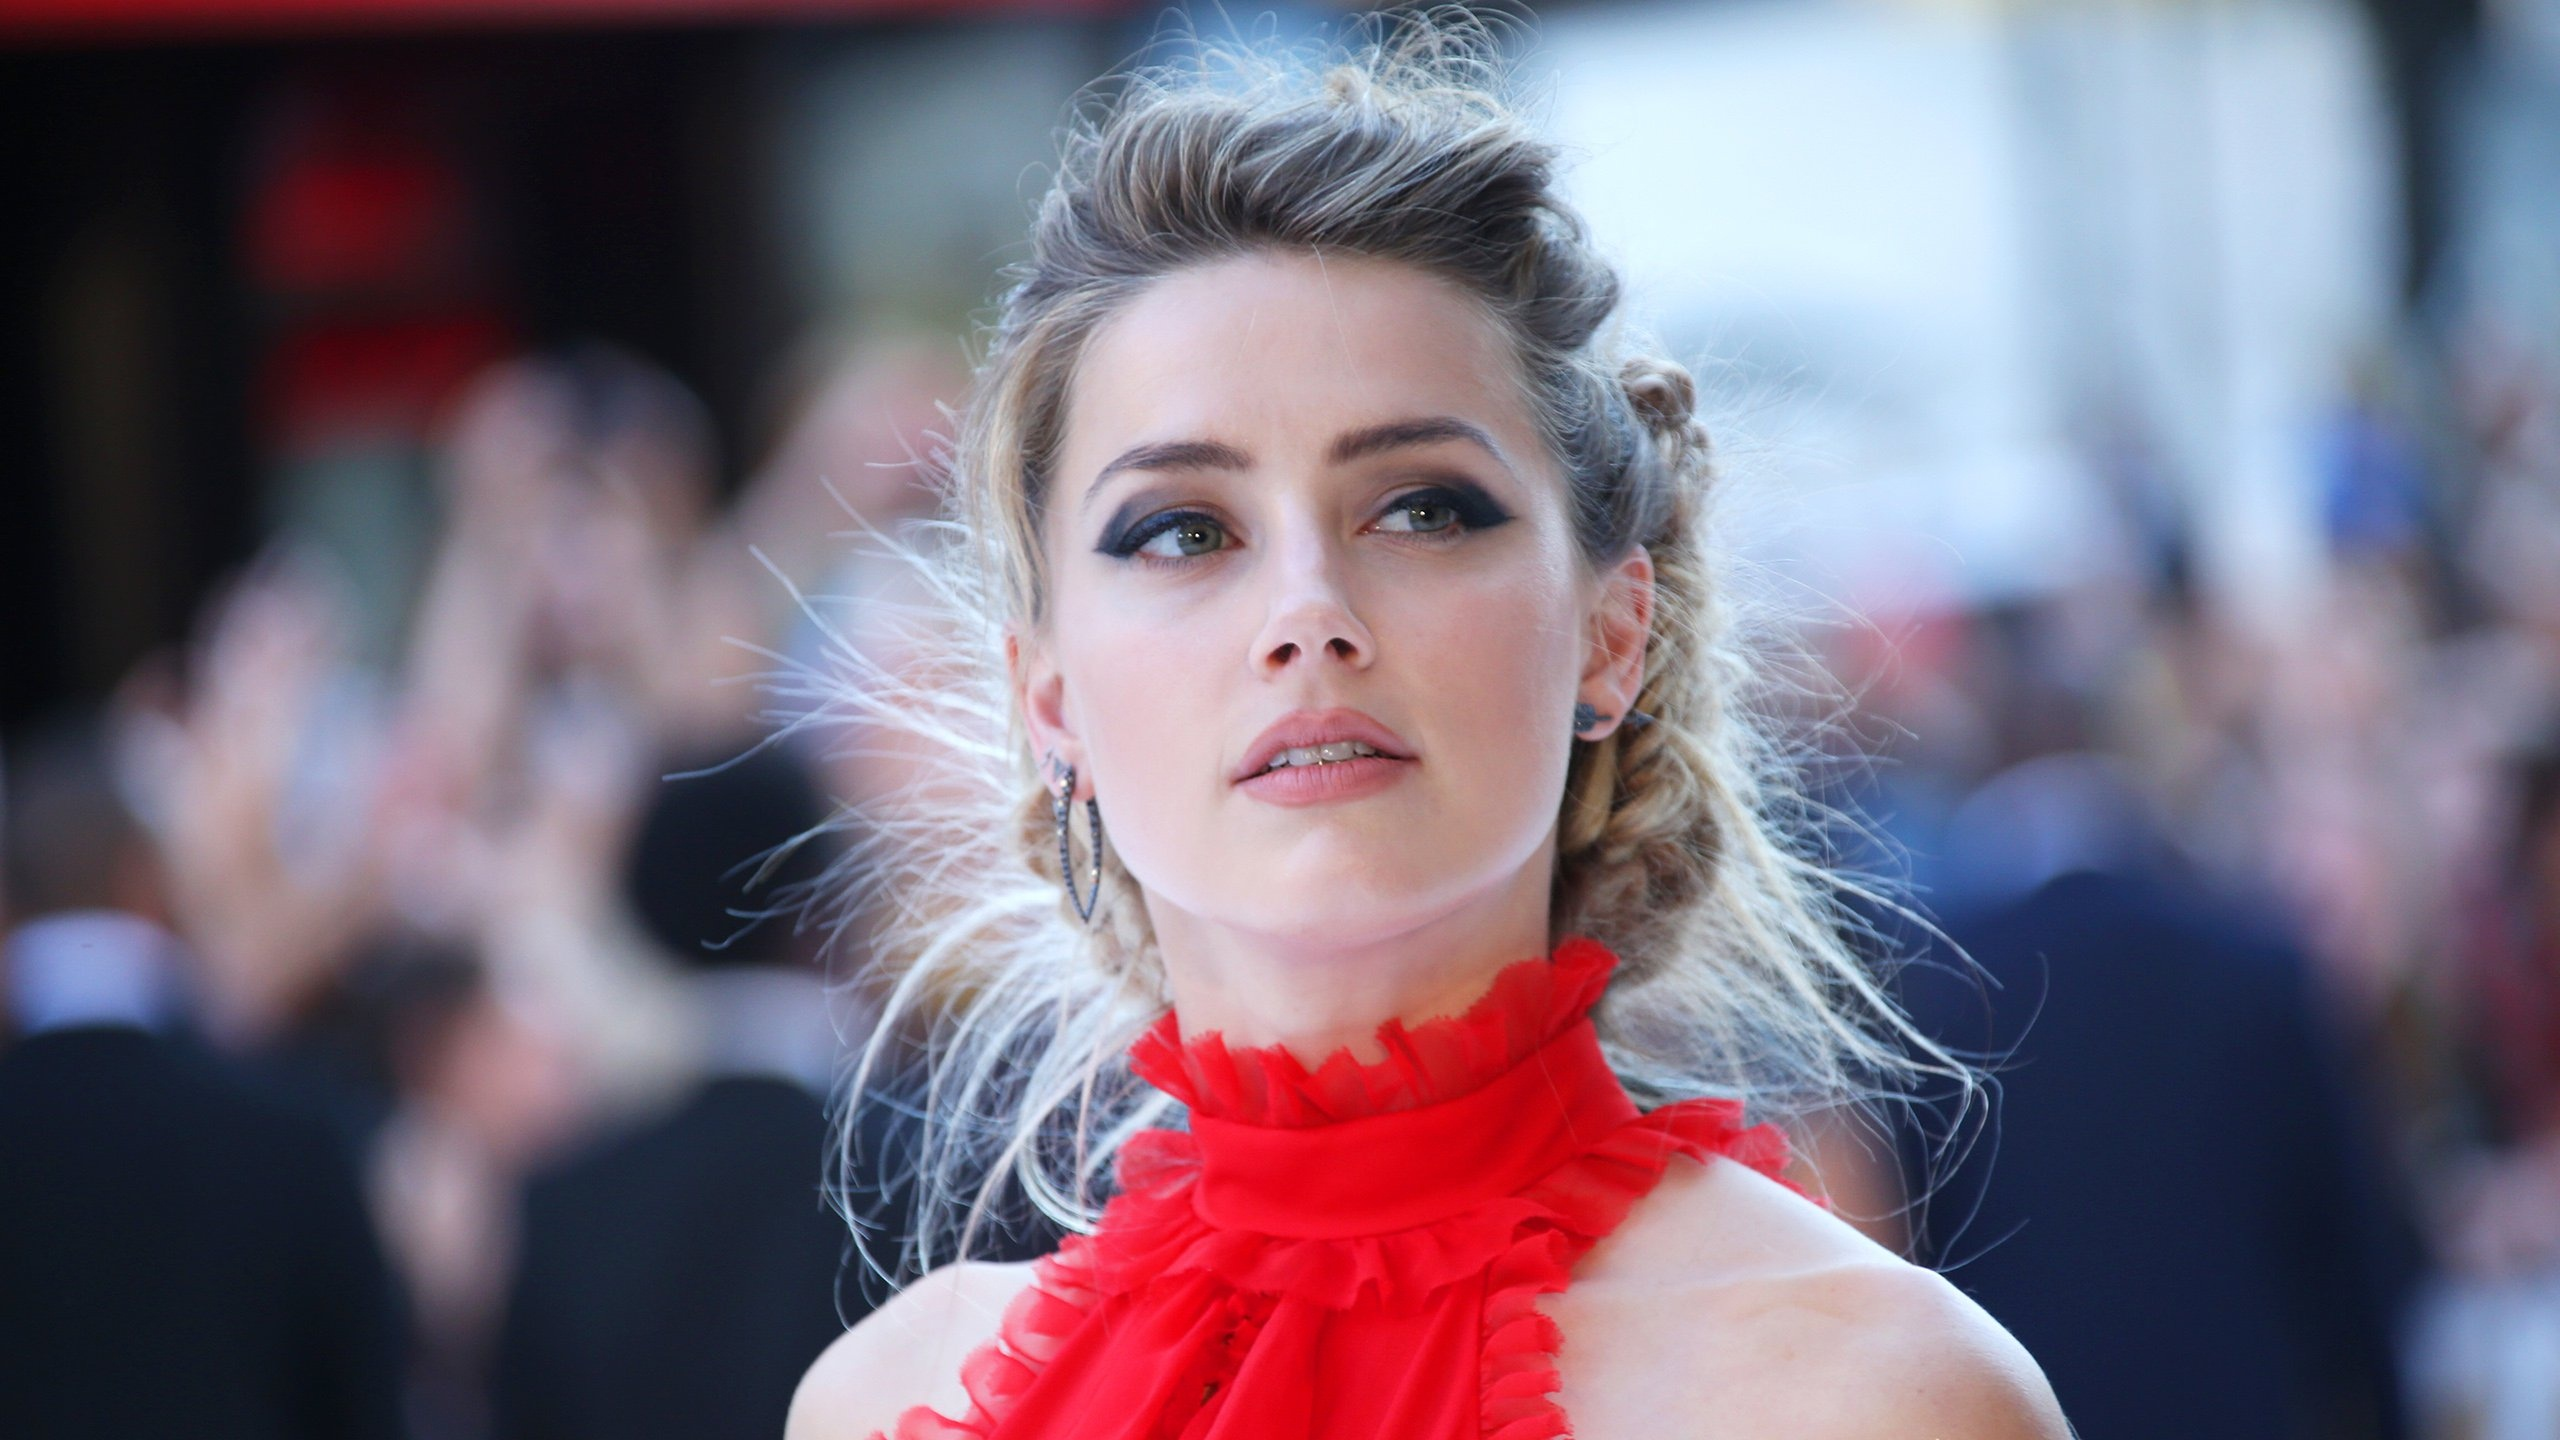 Amber Heard Wallpapers HD Backgrounds Images Pics Photos 2560x1440